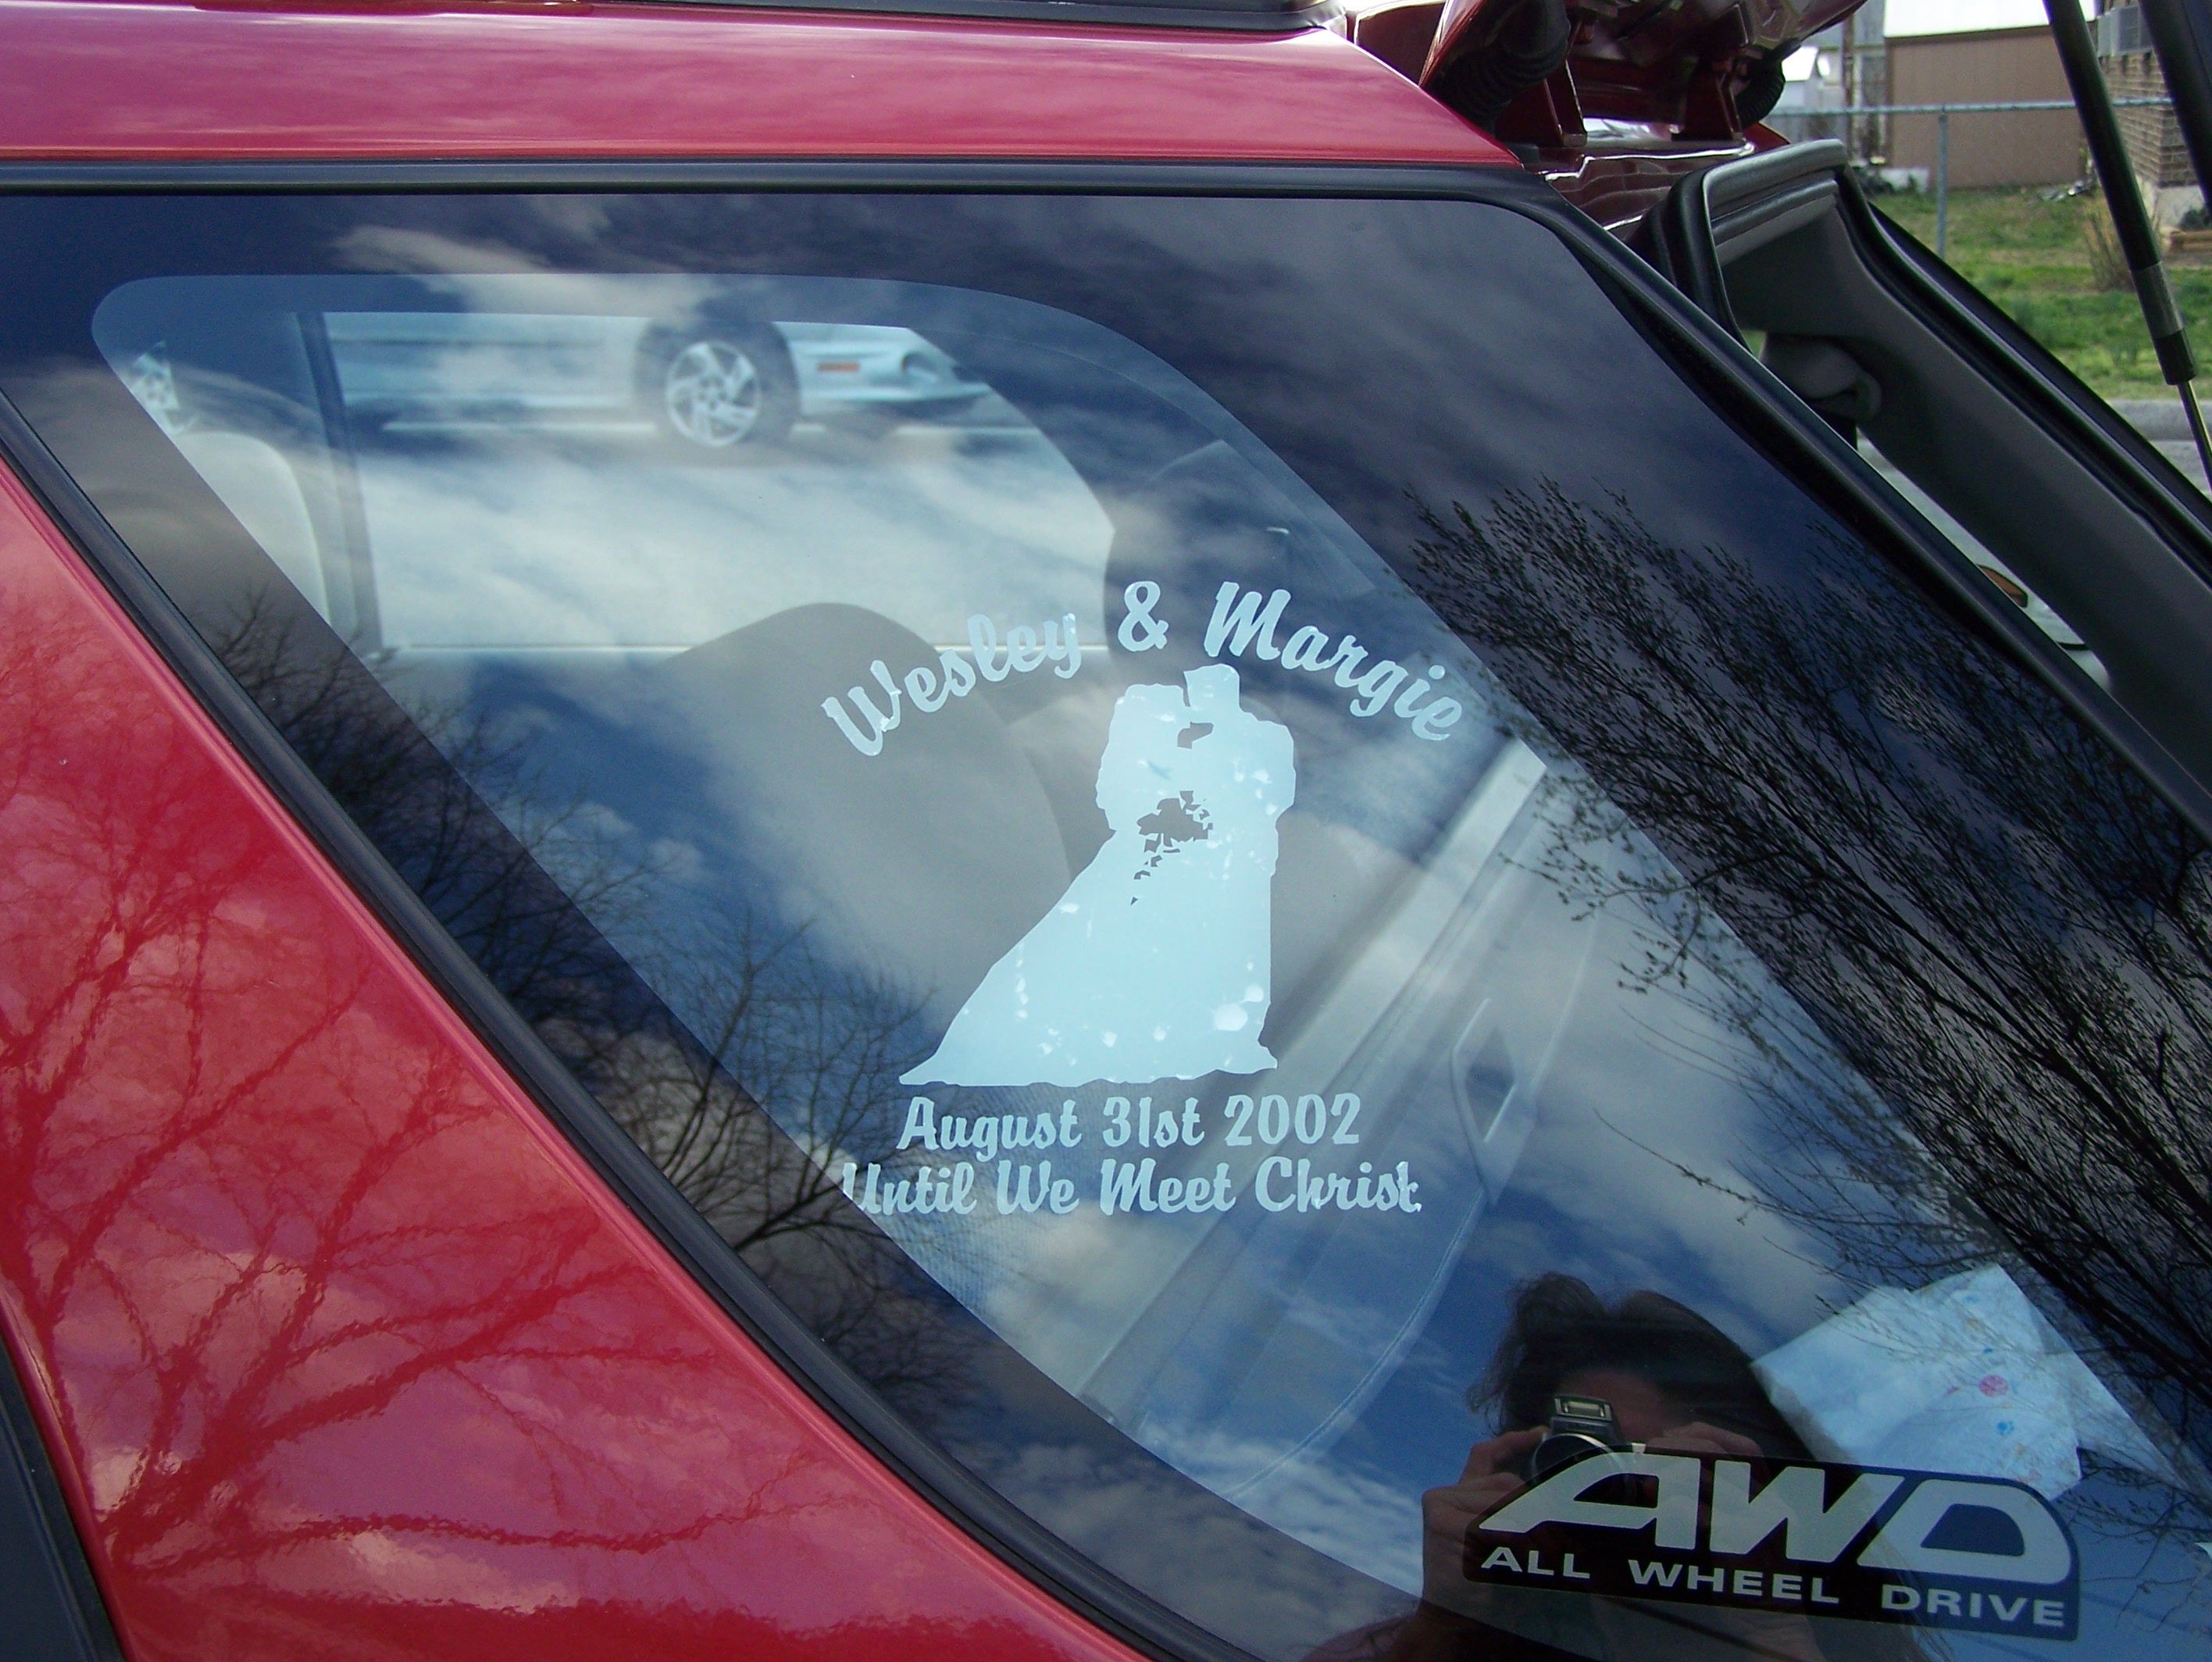 Make stickers for your car - Bride Groom Wedding Decals And Stickers Make Easy Diy Wedding Decor Ideas